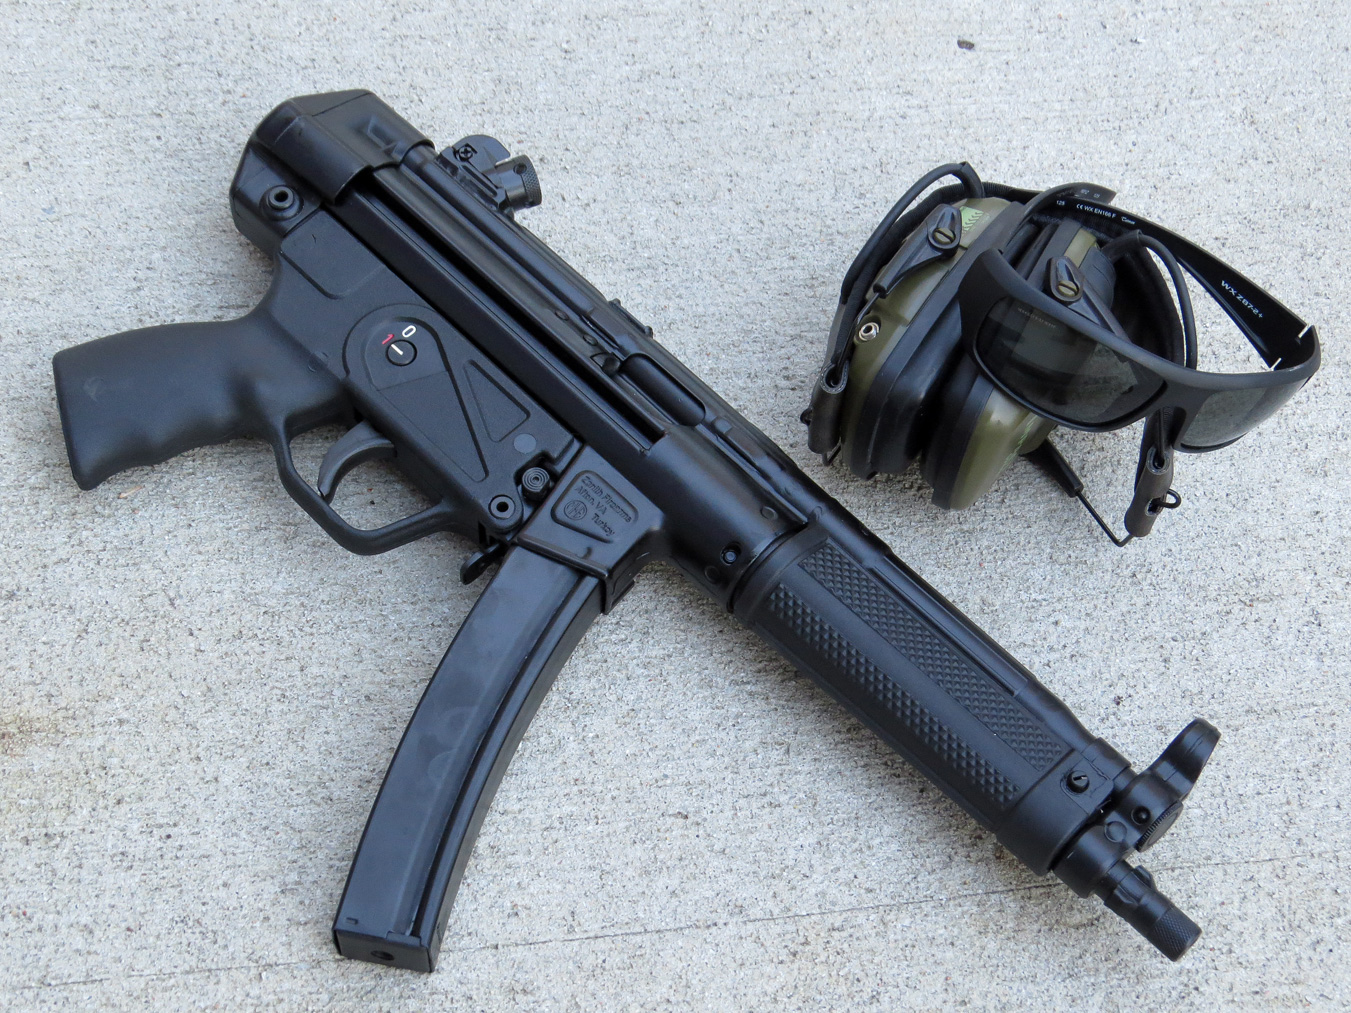 Zenith MKE Z-5RS MP5 pistol right profile with earmuffs